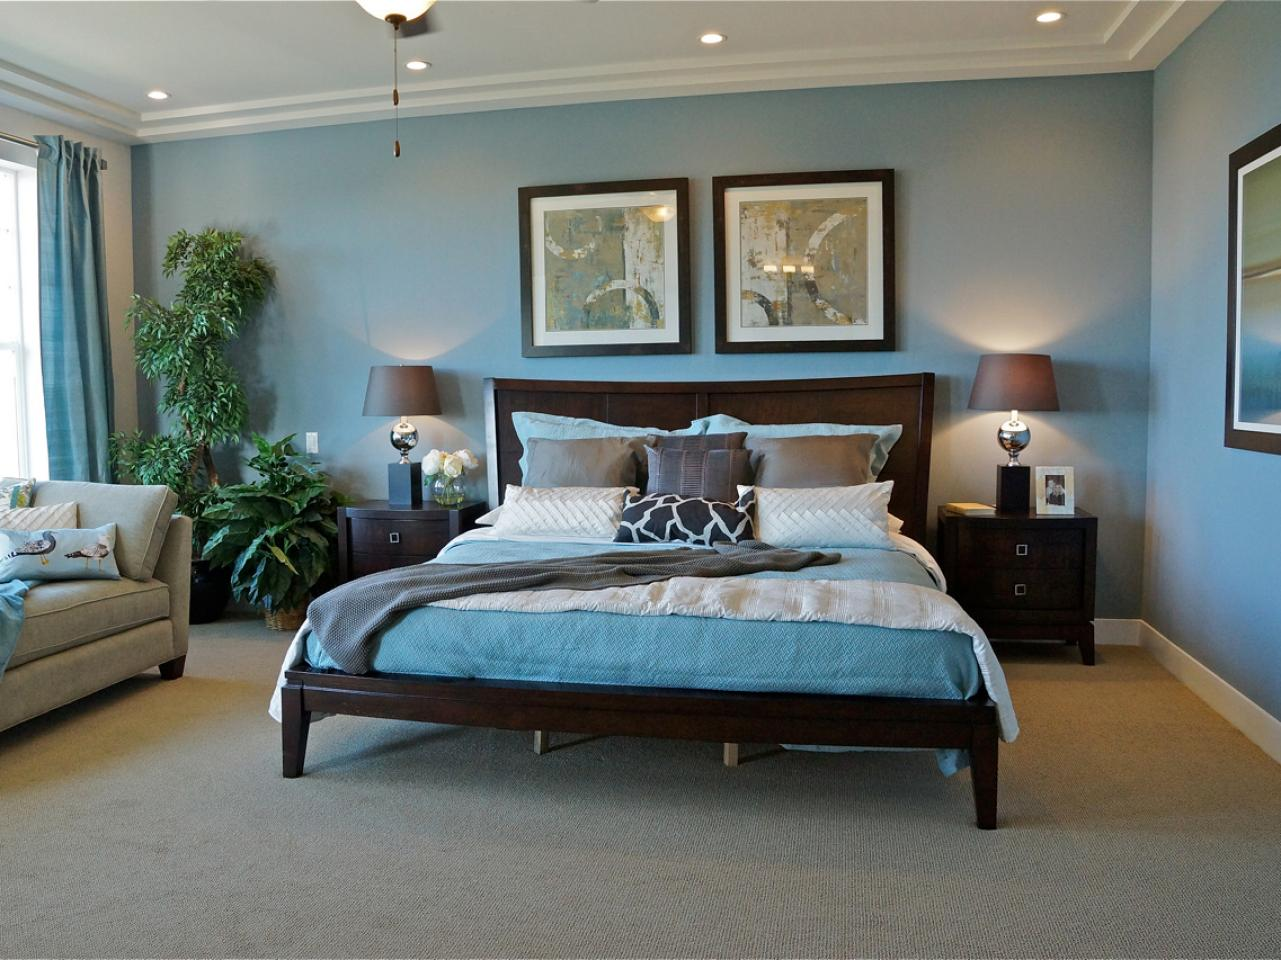 Photos hgtv for Bedroom picture ideas